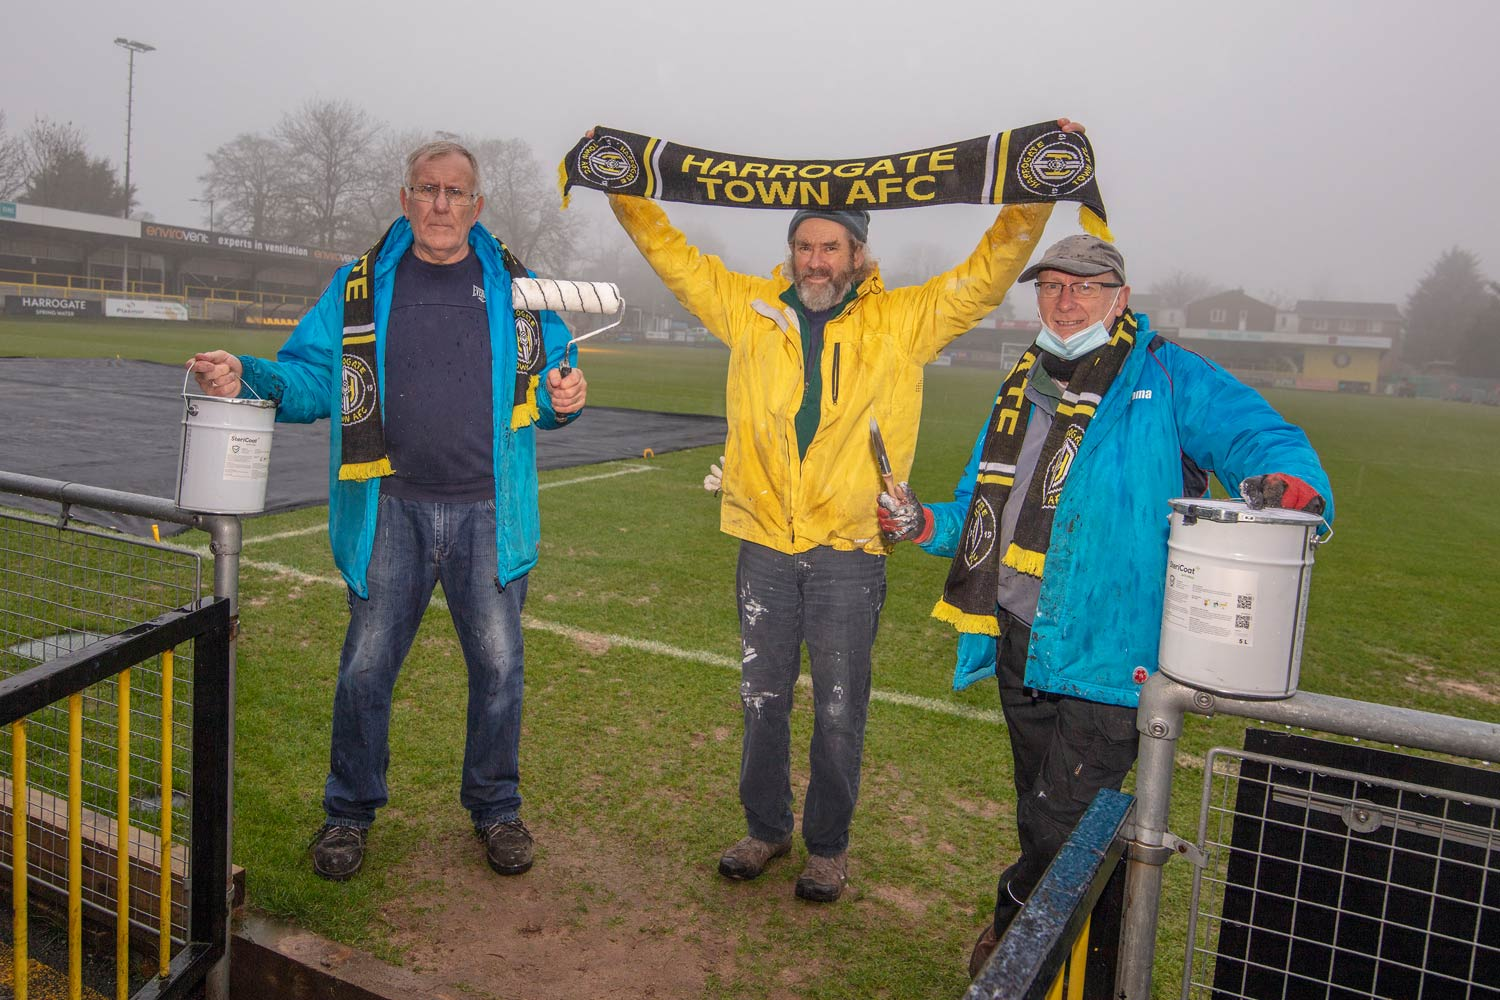 Volunteers (L-R) John Fall played for Harrogate Town in the 1960's , Ed Hess, this is his first year of volunteering and 66 year old Chris Clewes has been volunteering for three years